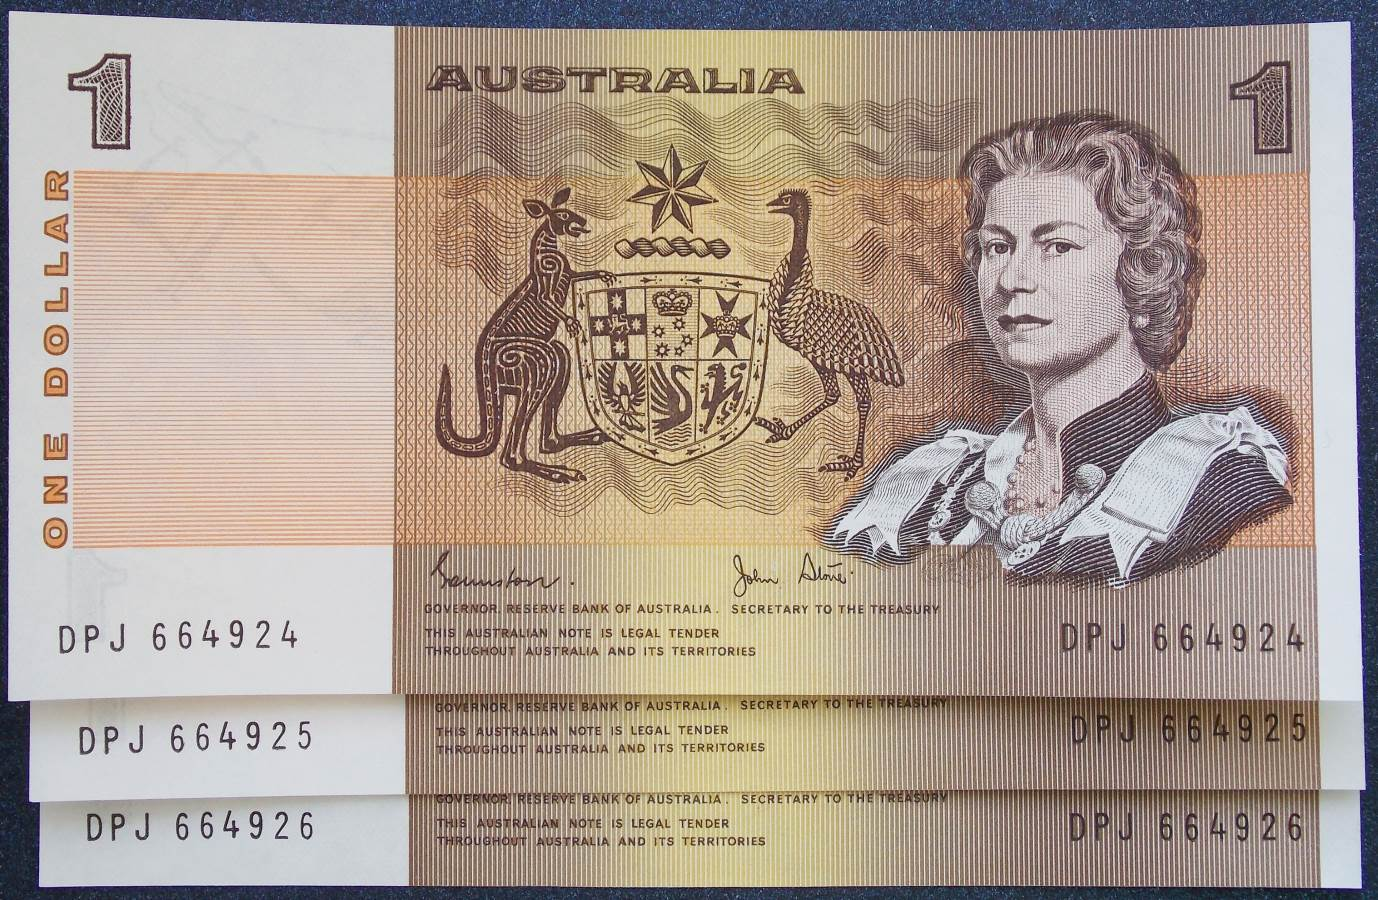 1982 Australia One Dollar Note - DPJ x 3